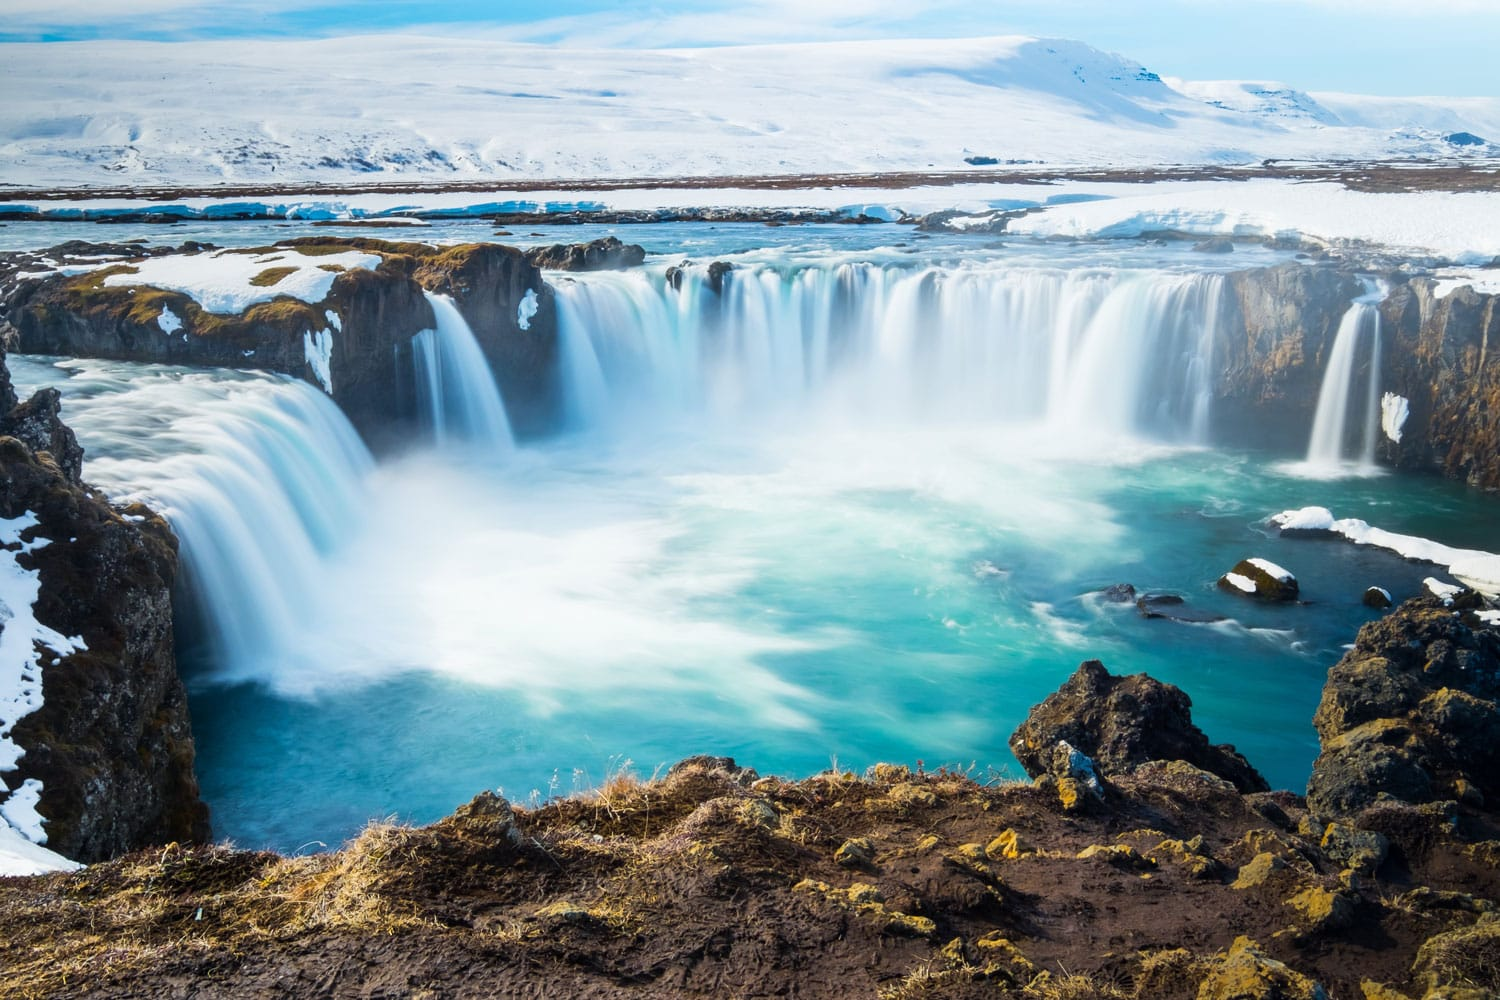 Godafoss,the one of the most spectacular waterfalls in Iceland.